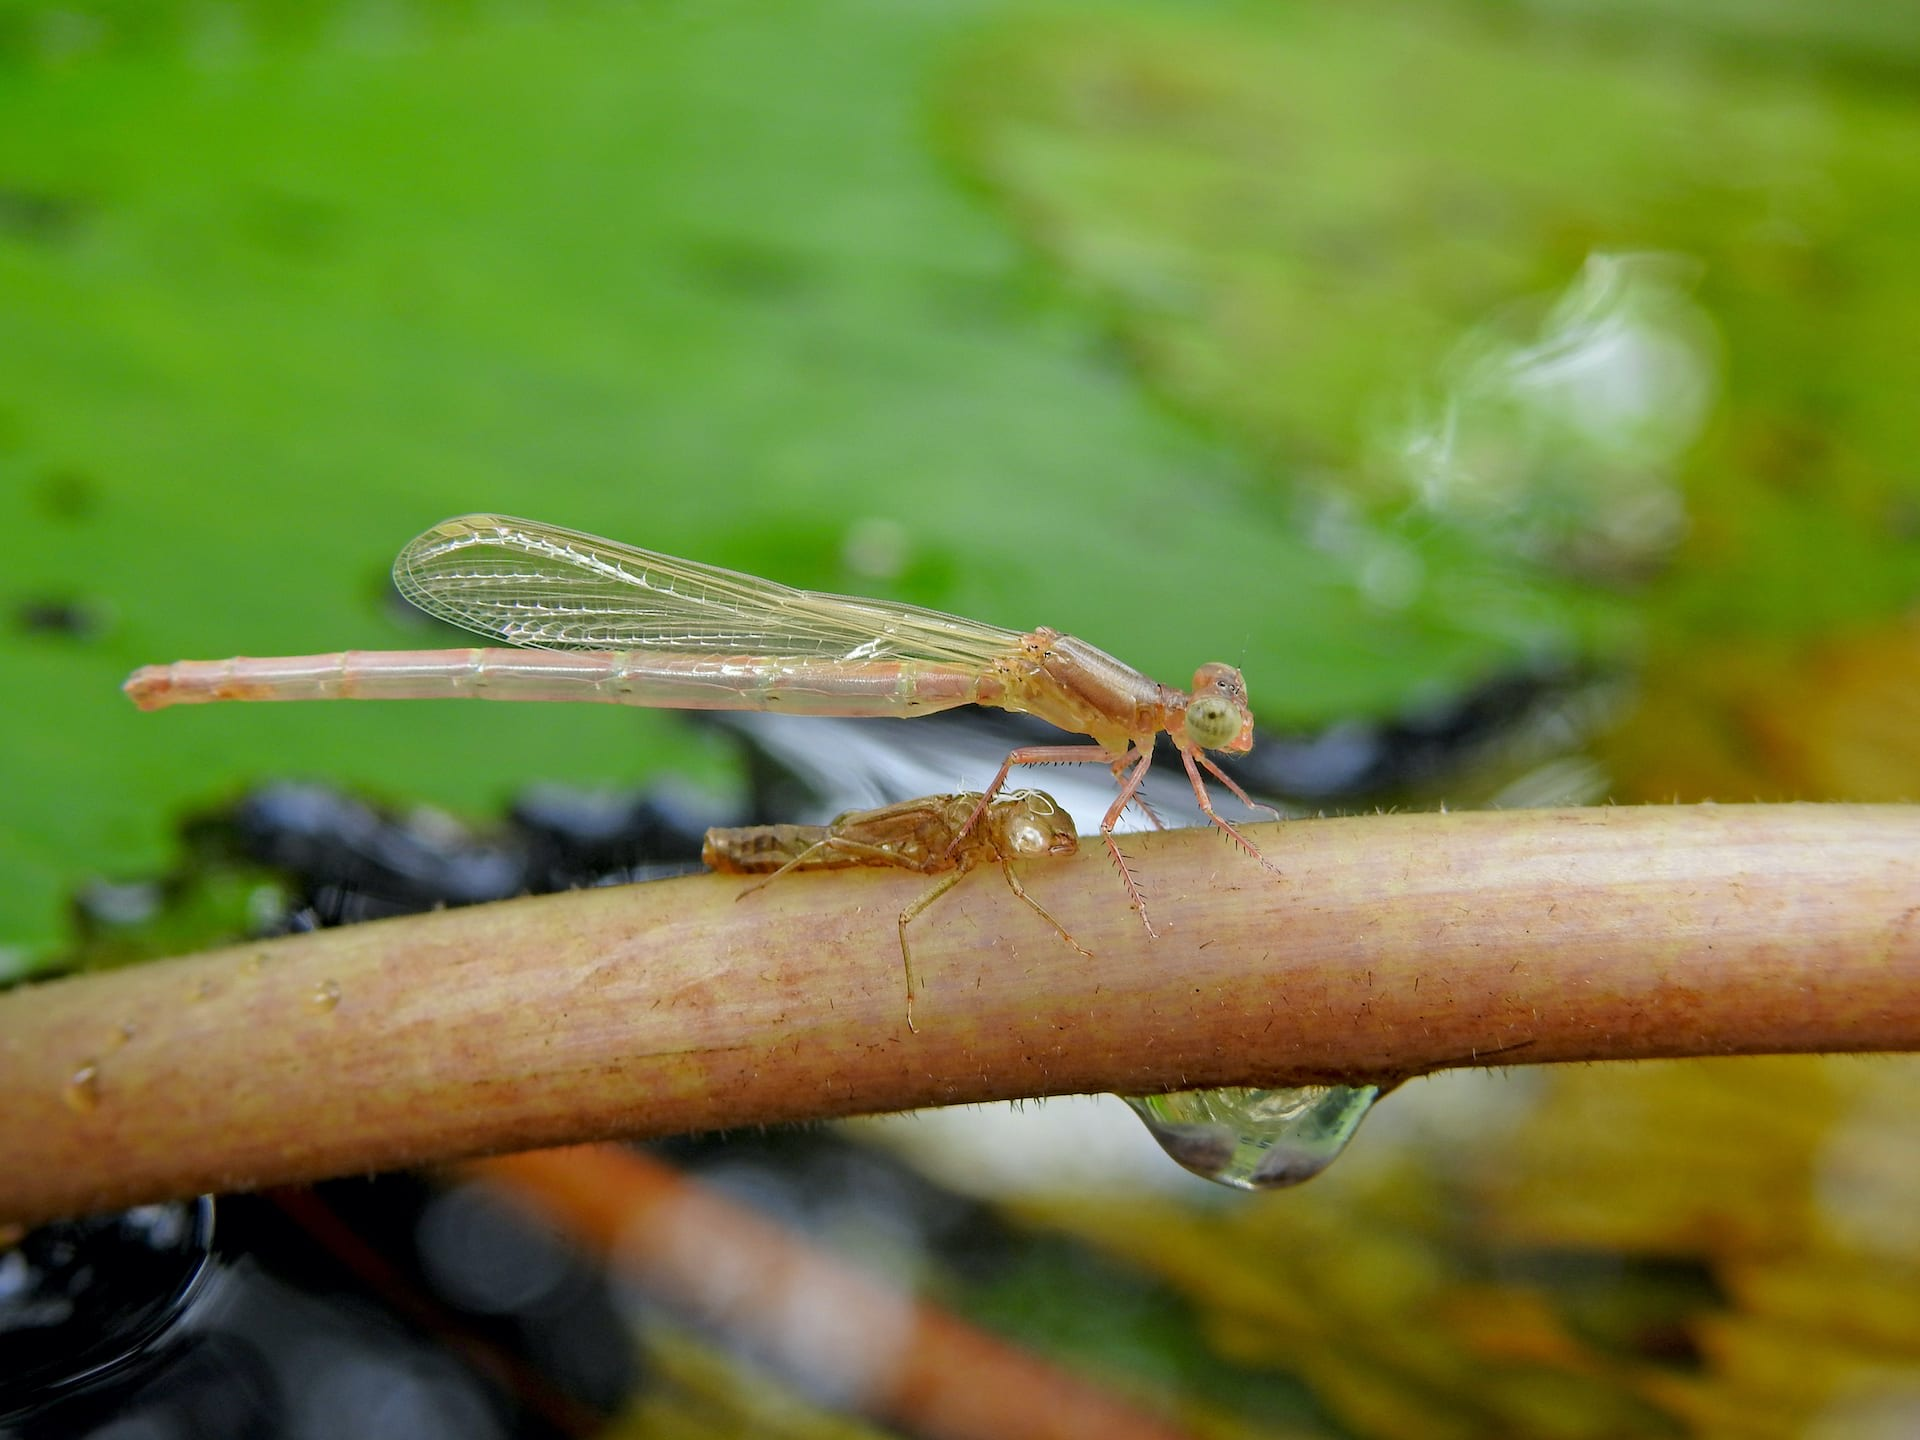 A damselfy emerges from its final nymphal stage. It is delicate, sans colours, and is known as a teneral at this stage. The nymphal case or exuvia, that is left behind is proof that the species has completed its lifecycle in the waterbody. Photo: Vivek Chandran A